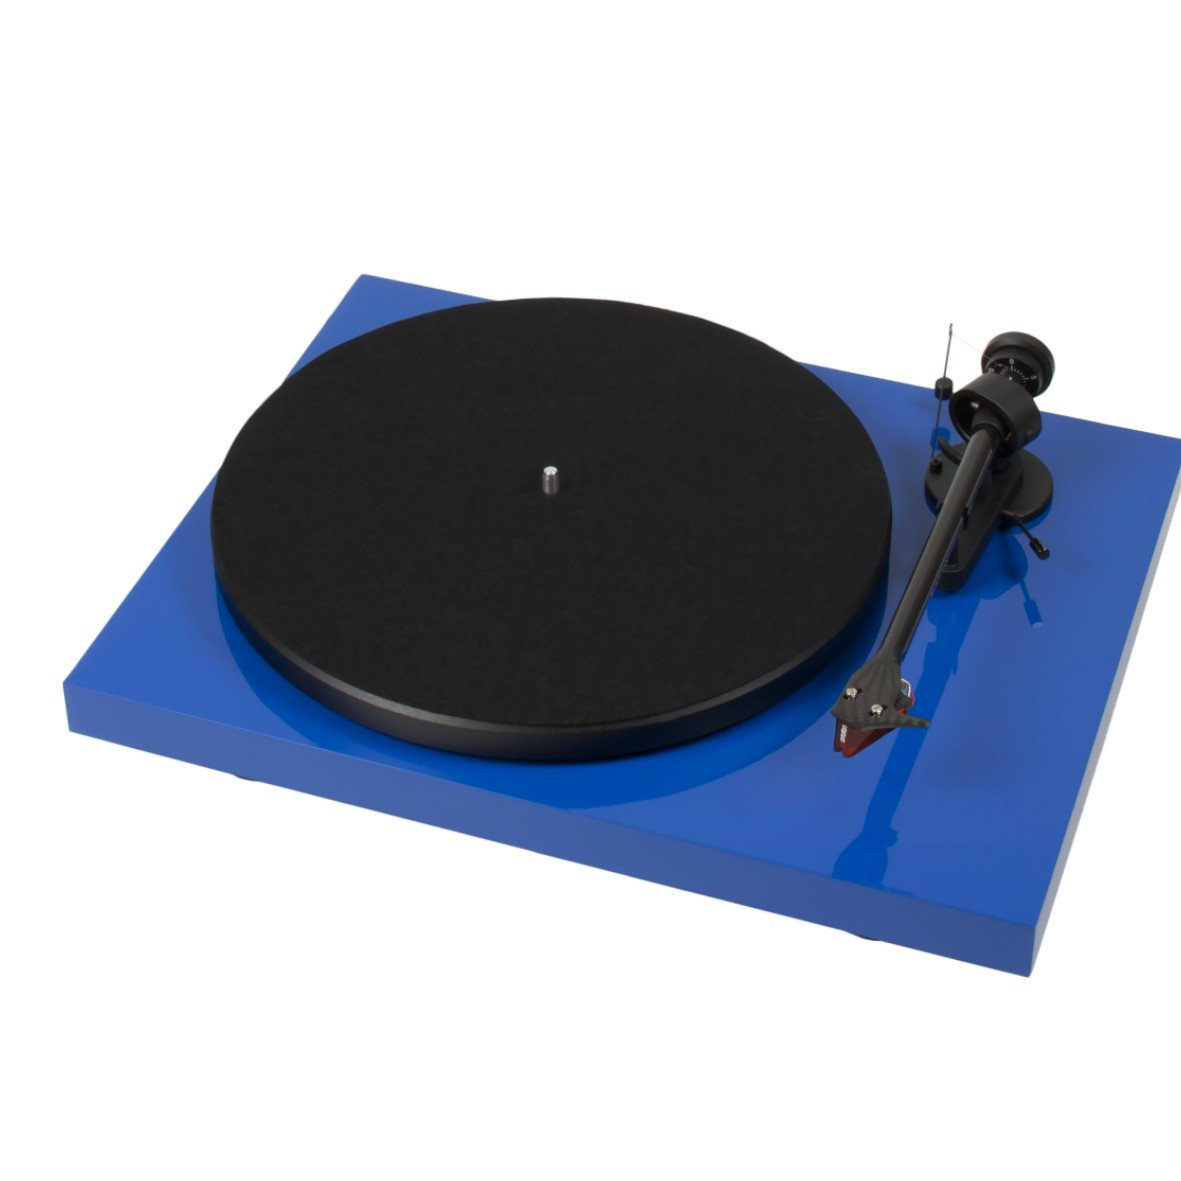 Pro-ject Carbon Debut / Maia S2 / Bowers & Wilkins M-1